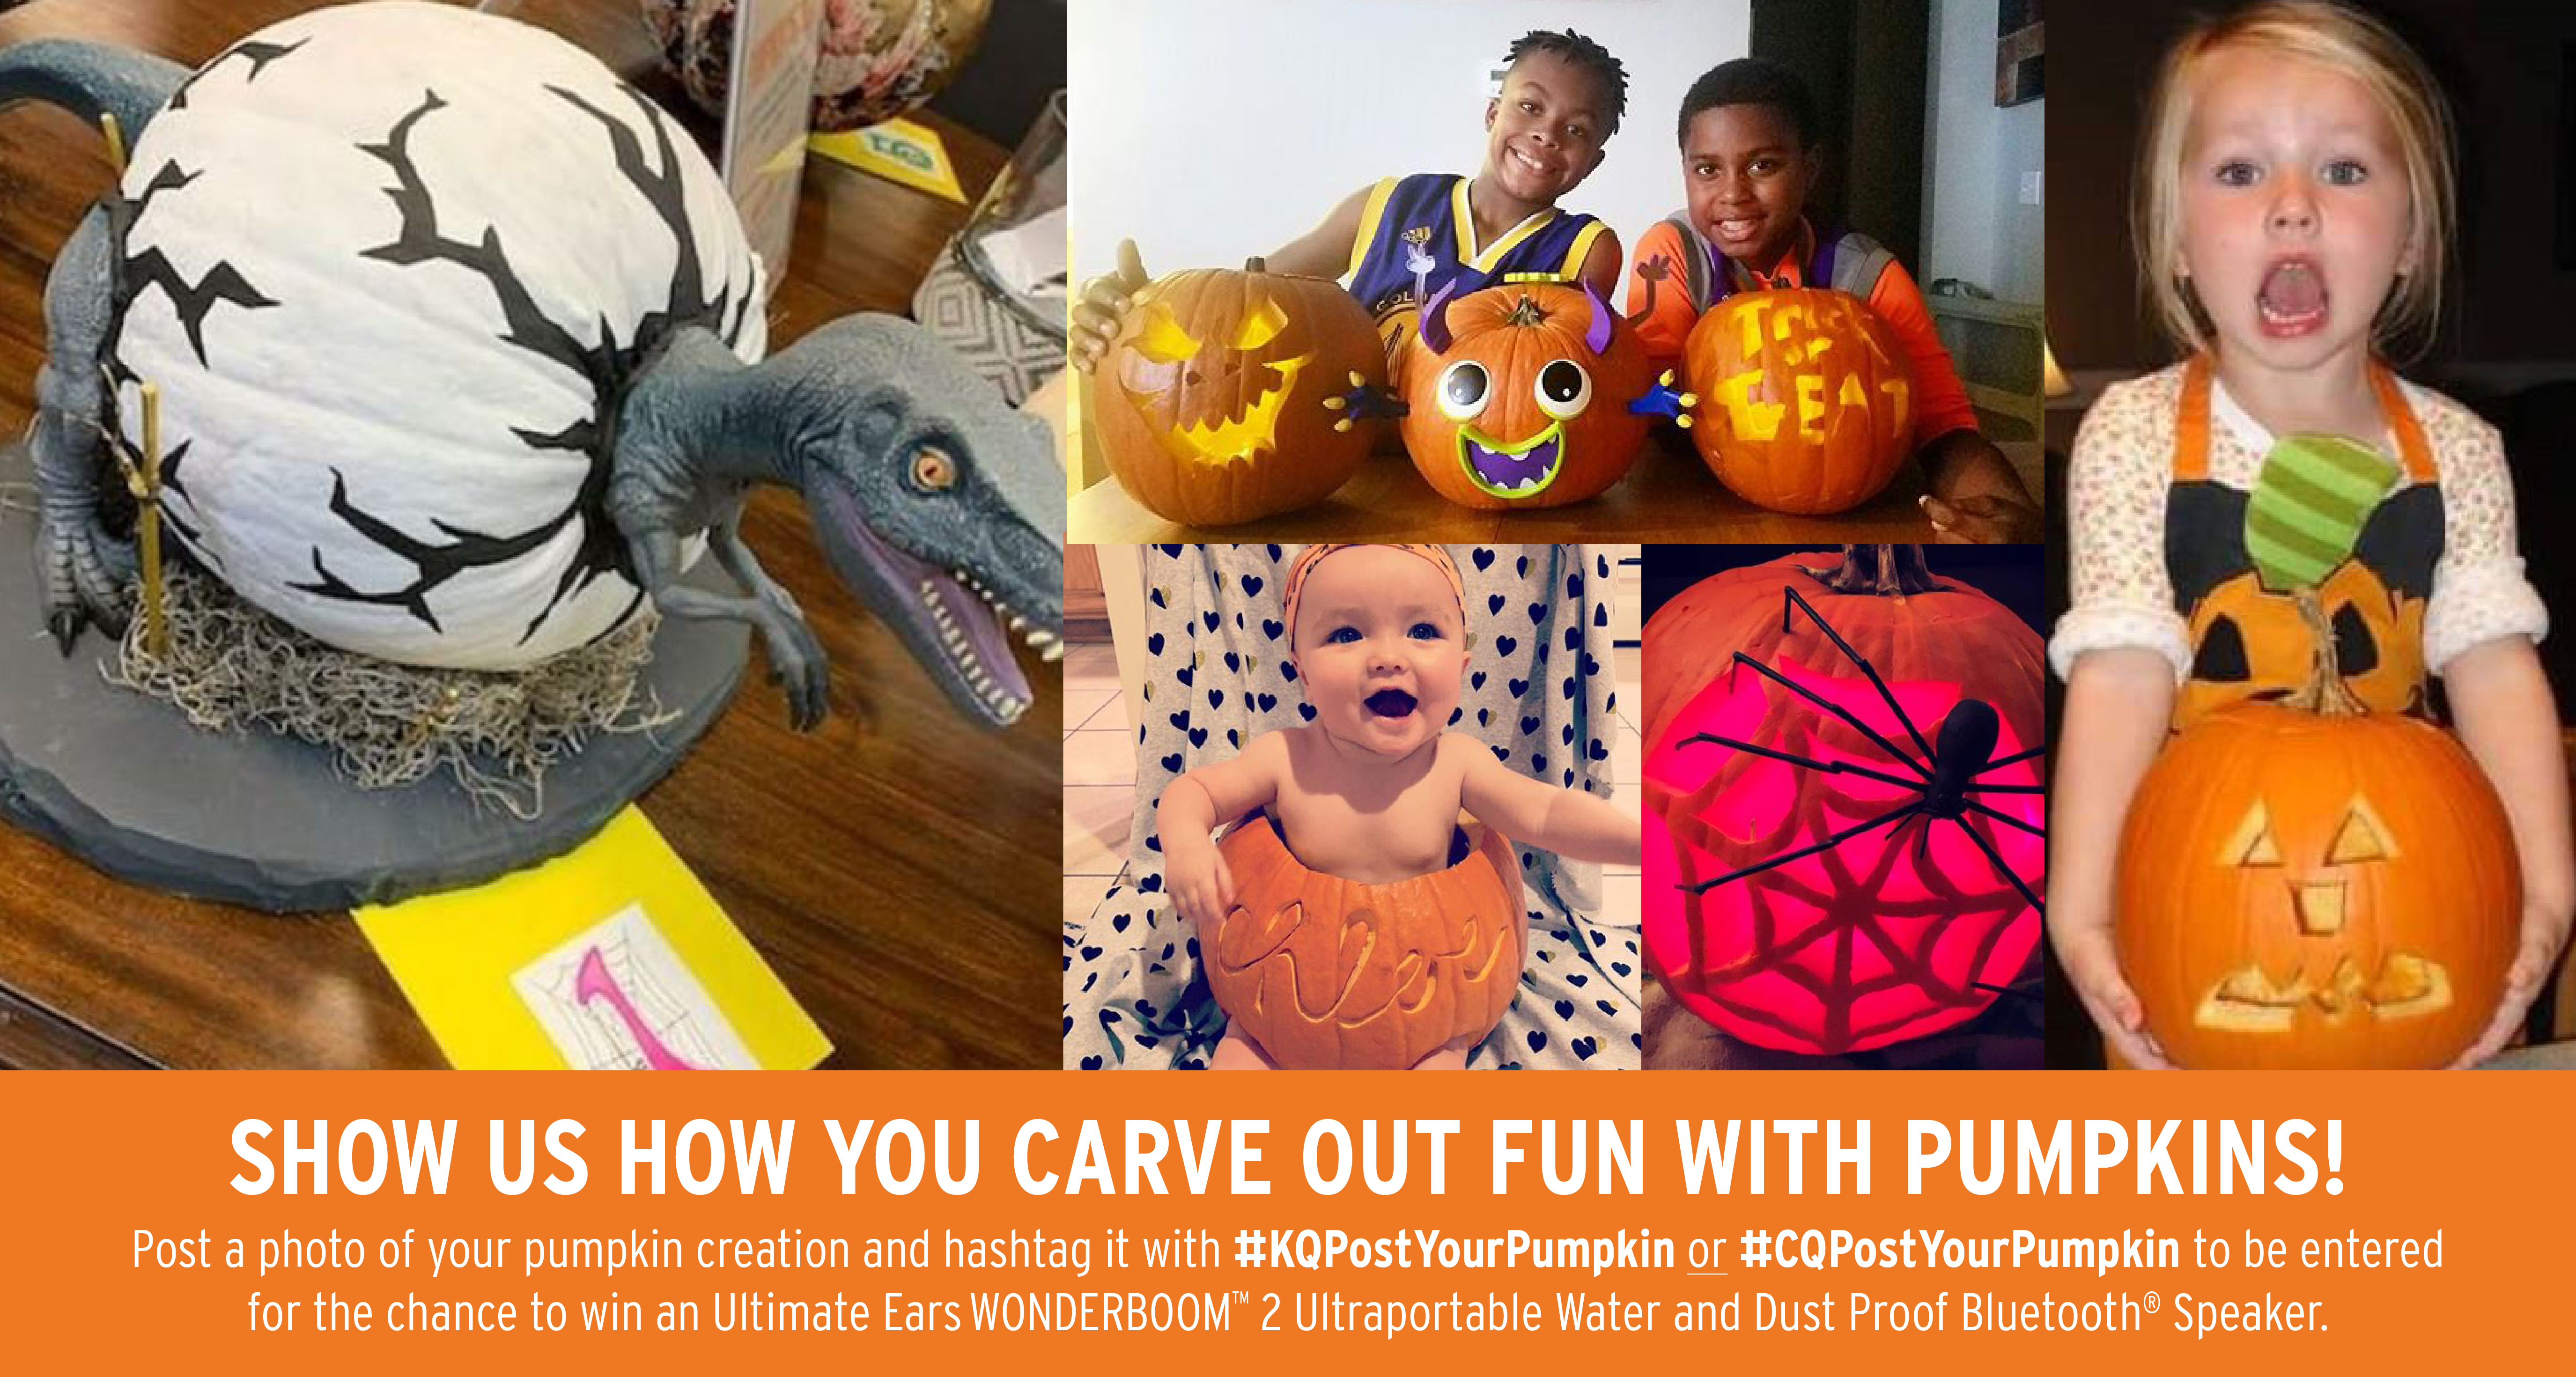 How Do You Carve Out Fun?